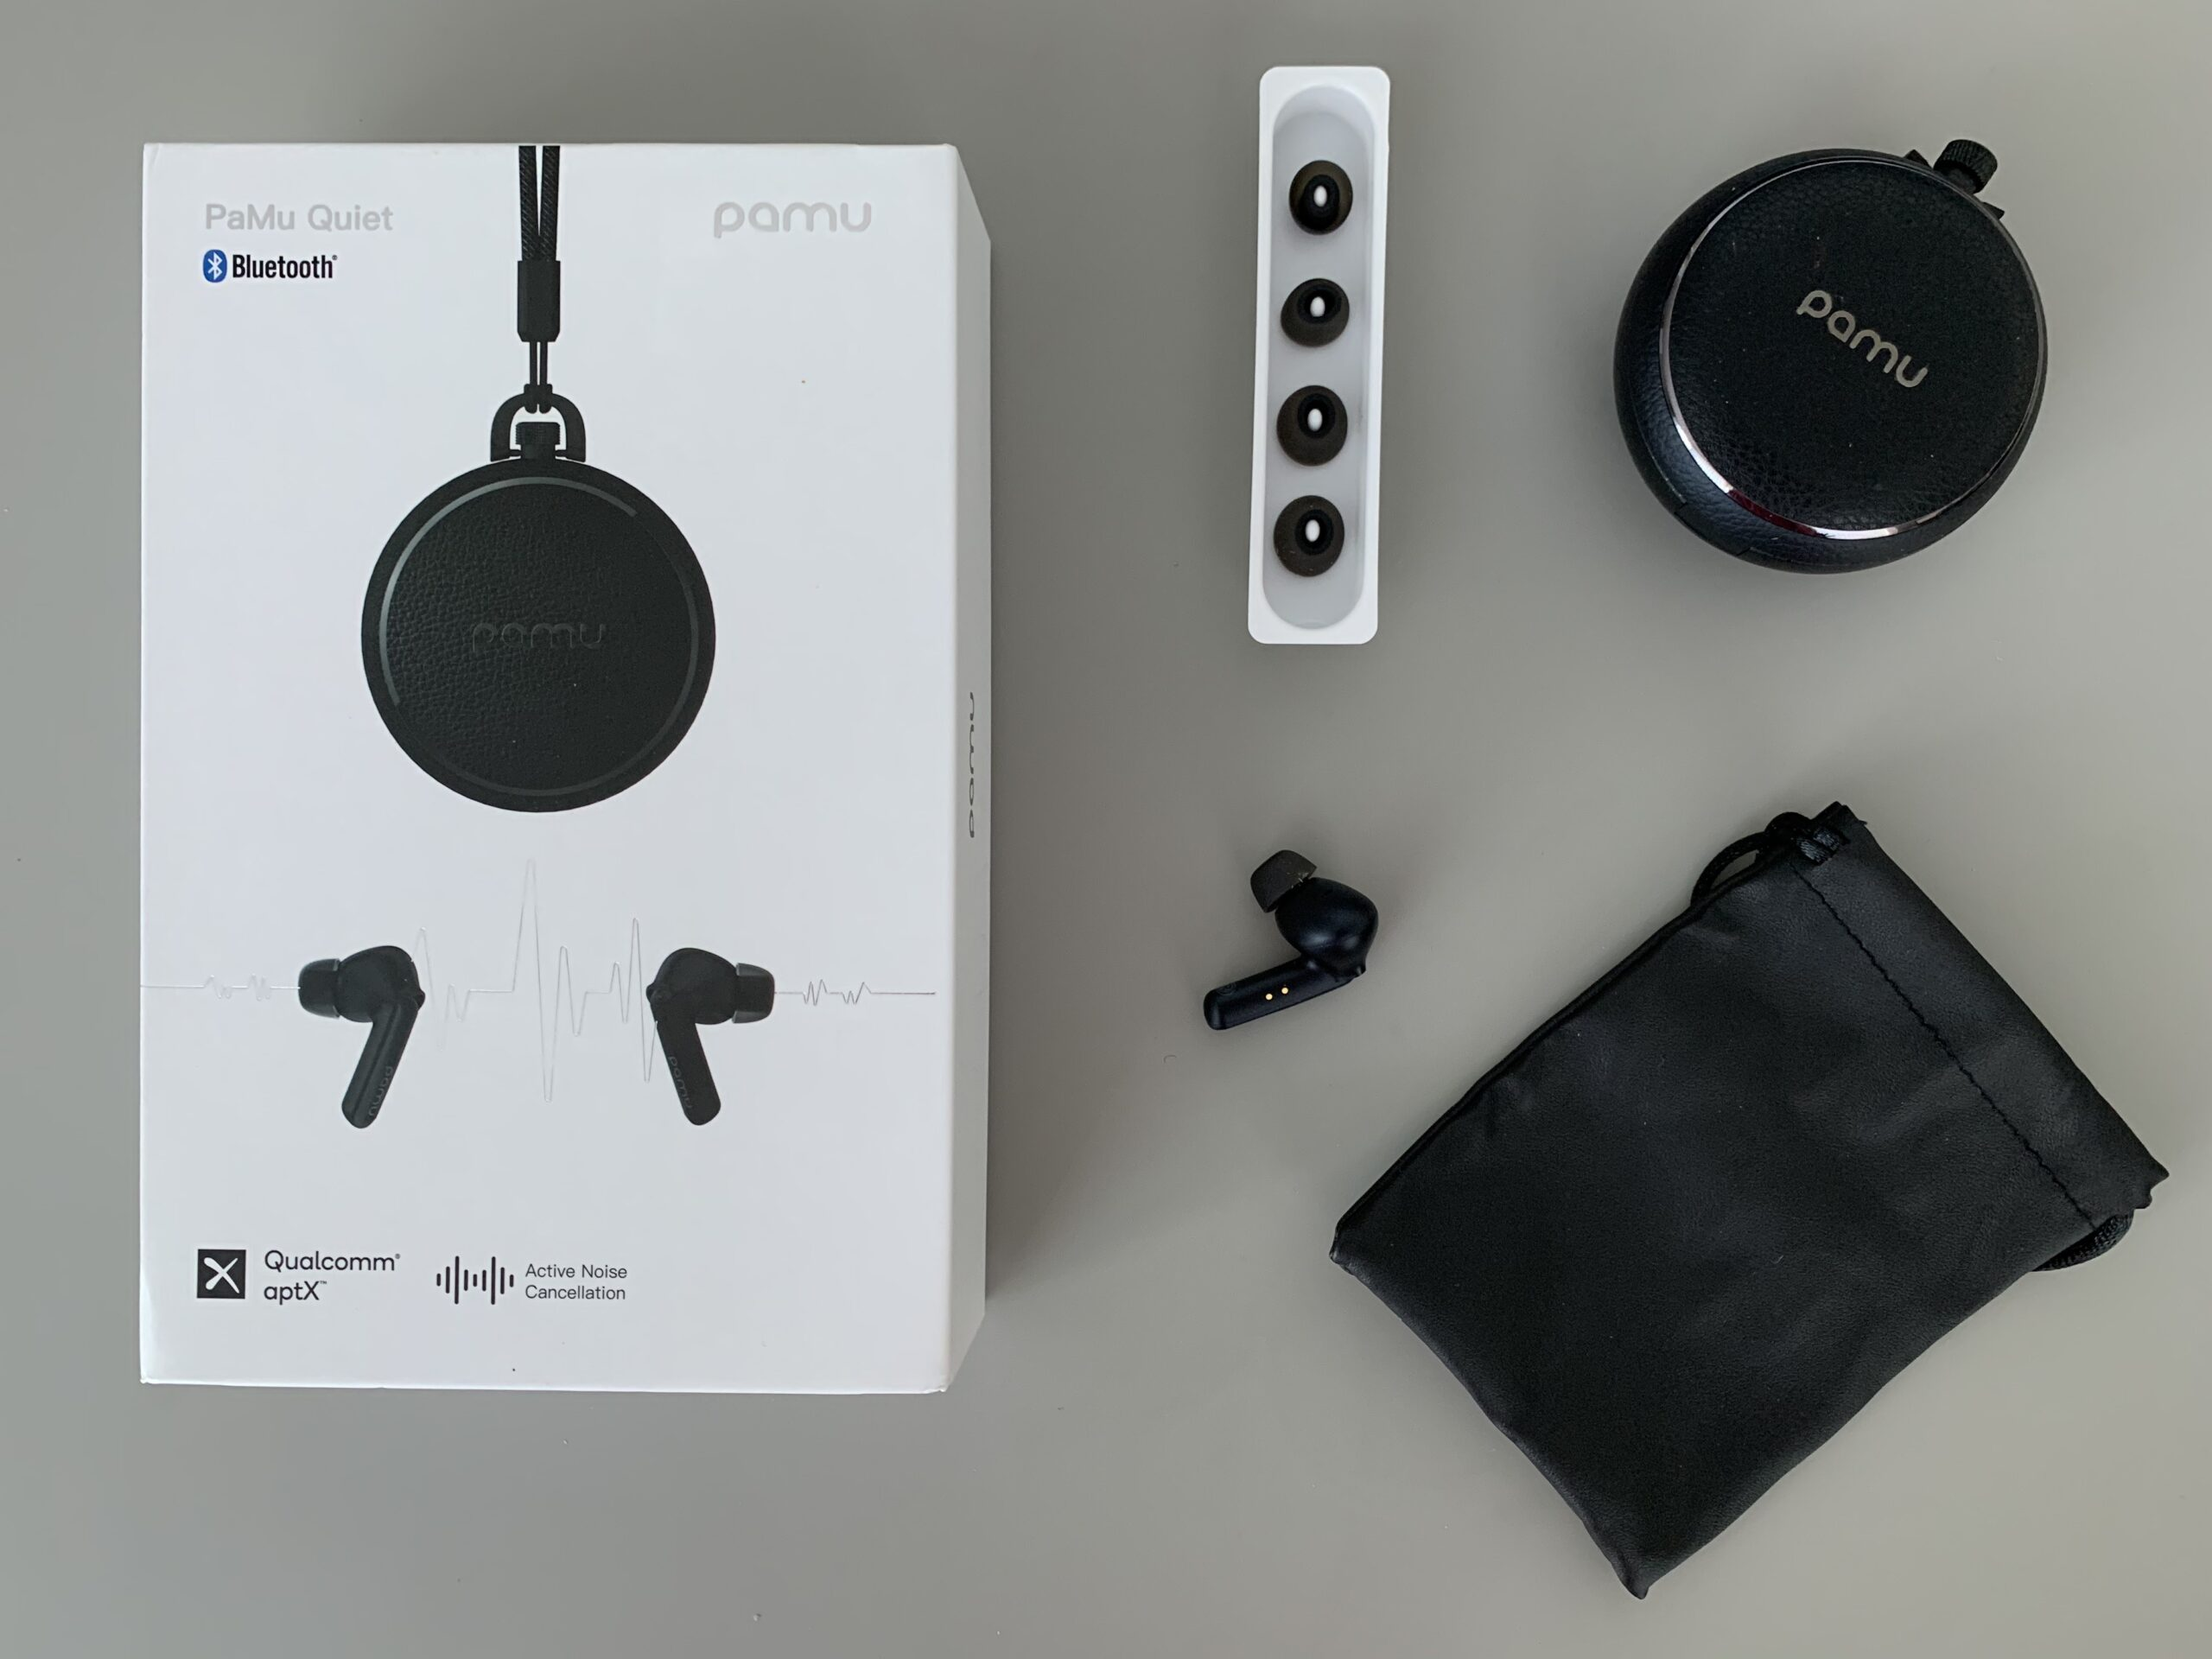 Christmas Gifts For Him: PaMu earphones are stylishly packaged and include three ear tip sizes for total comfort, lanyard, carry case, charging case and charging cable